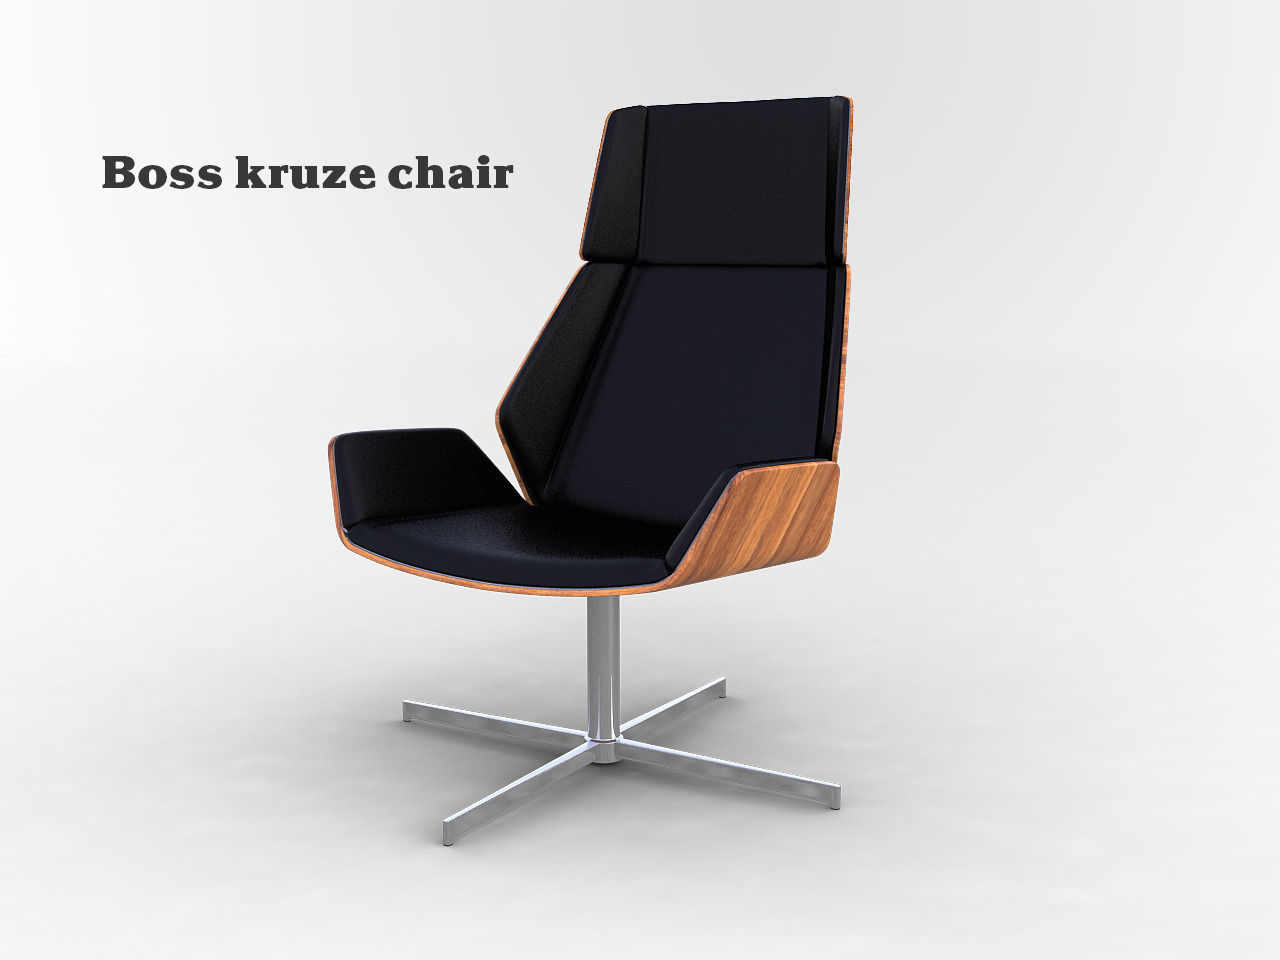 ... boss kruze chair 3d model max obj 2 ... & 3D Boss kruze chair | CGTrader